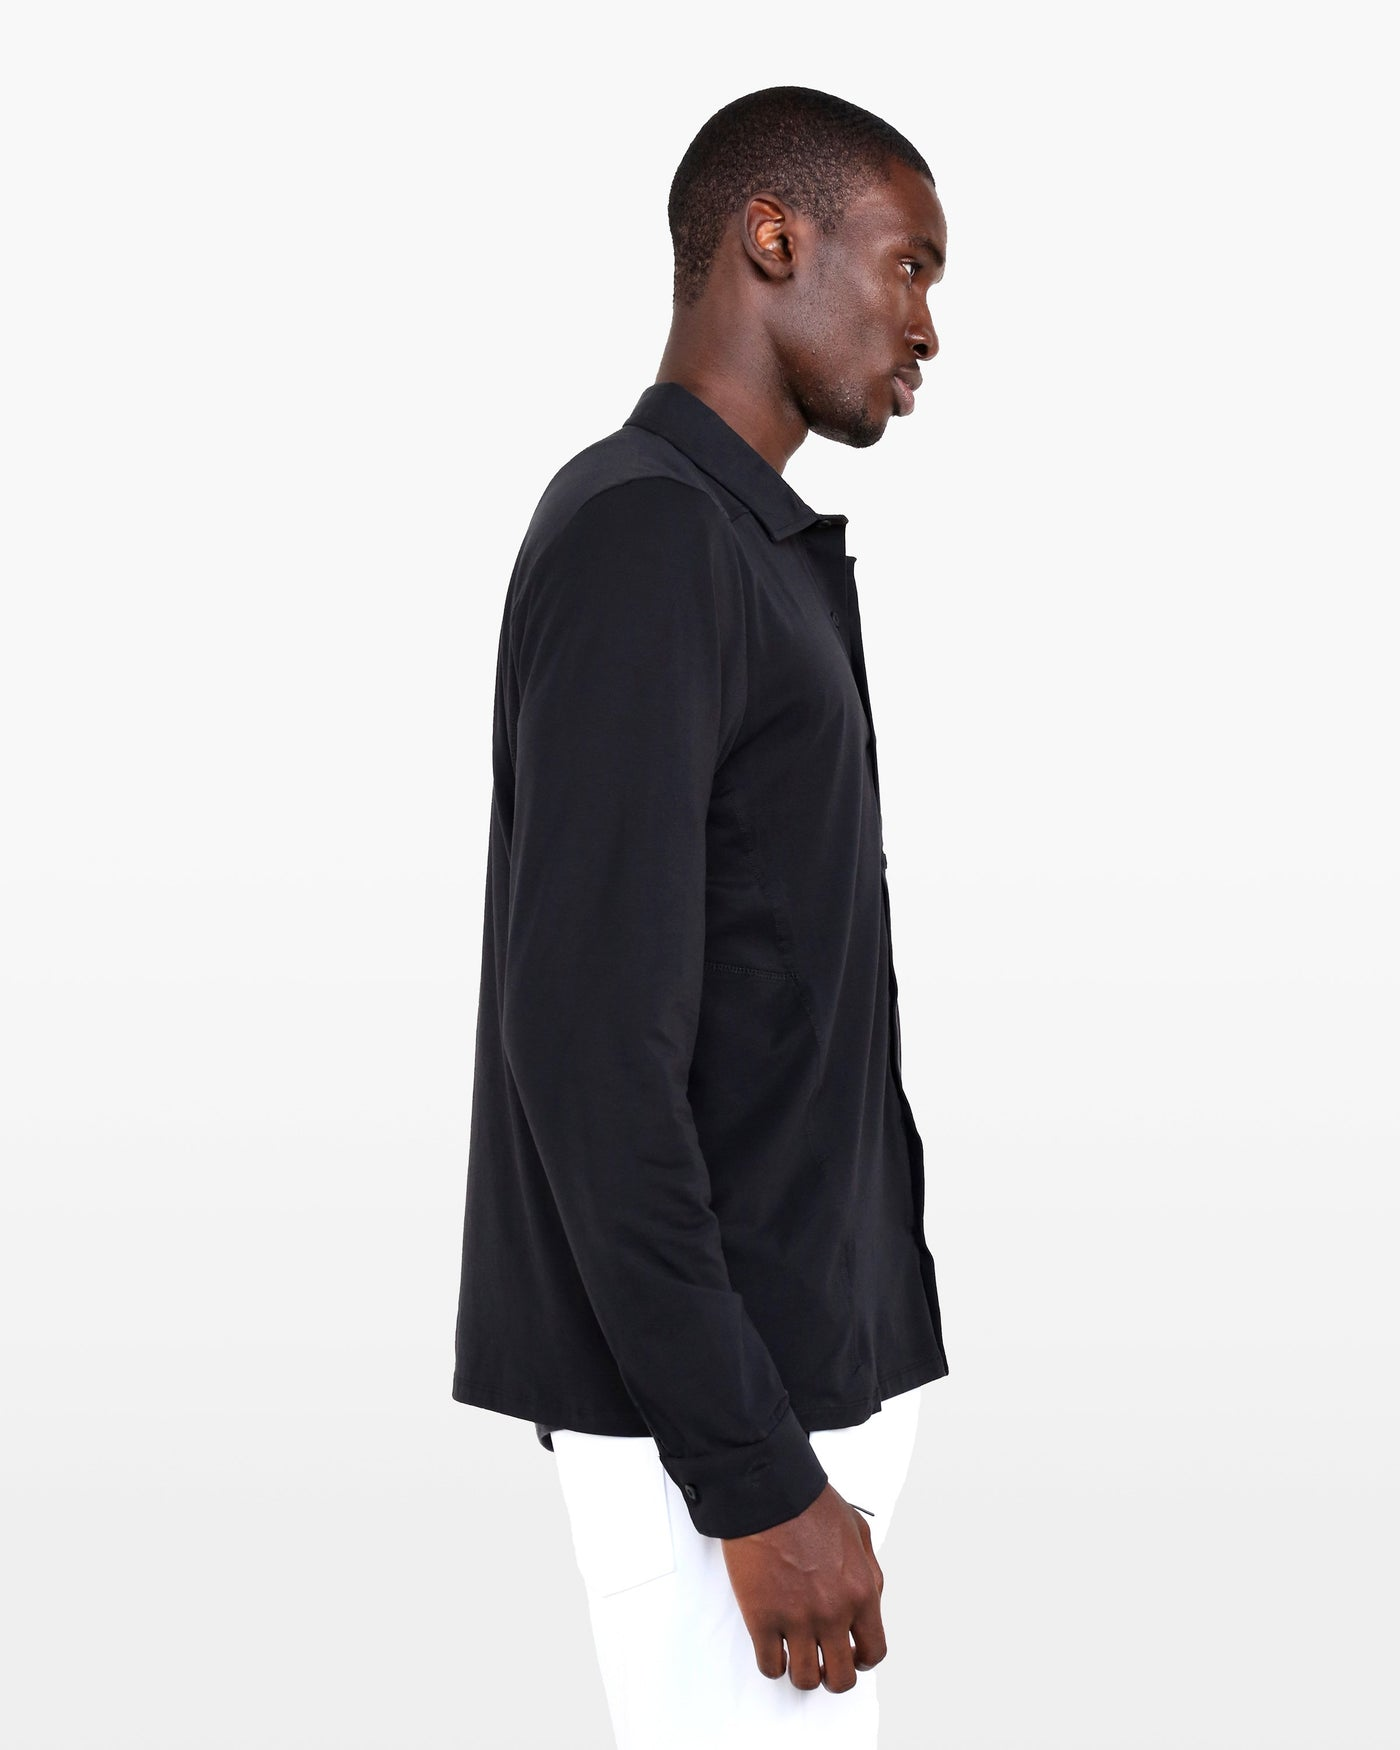 Planck Shirt DRJ in black